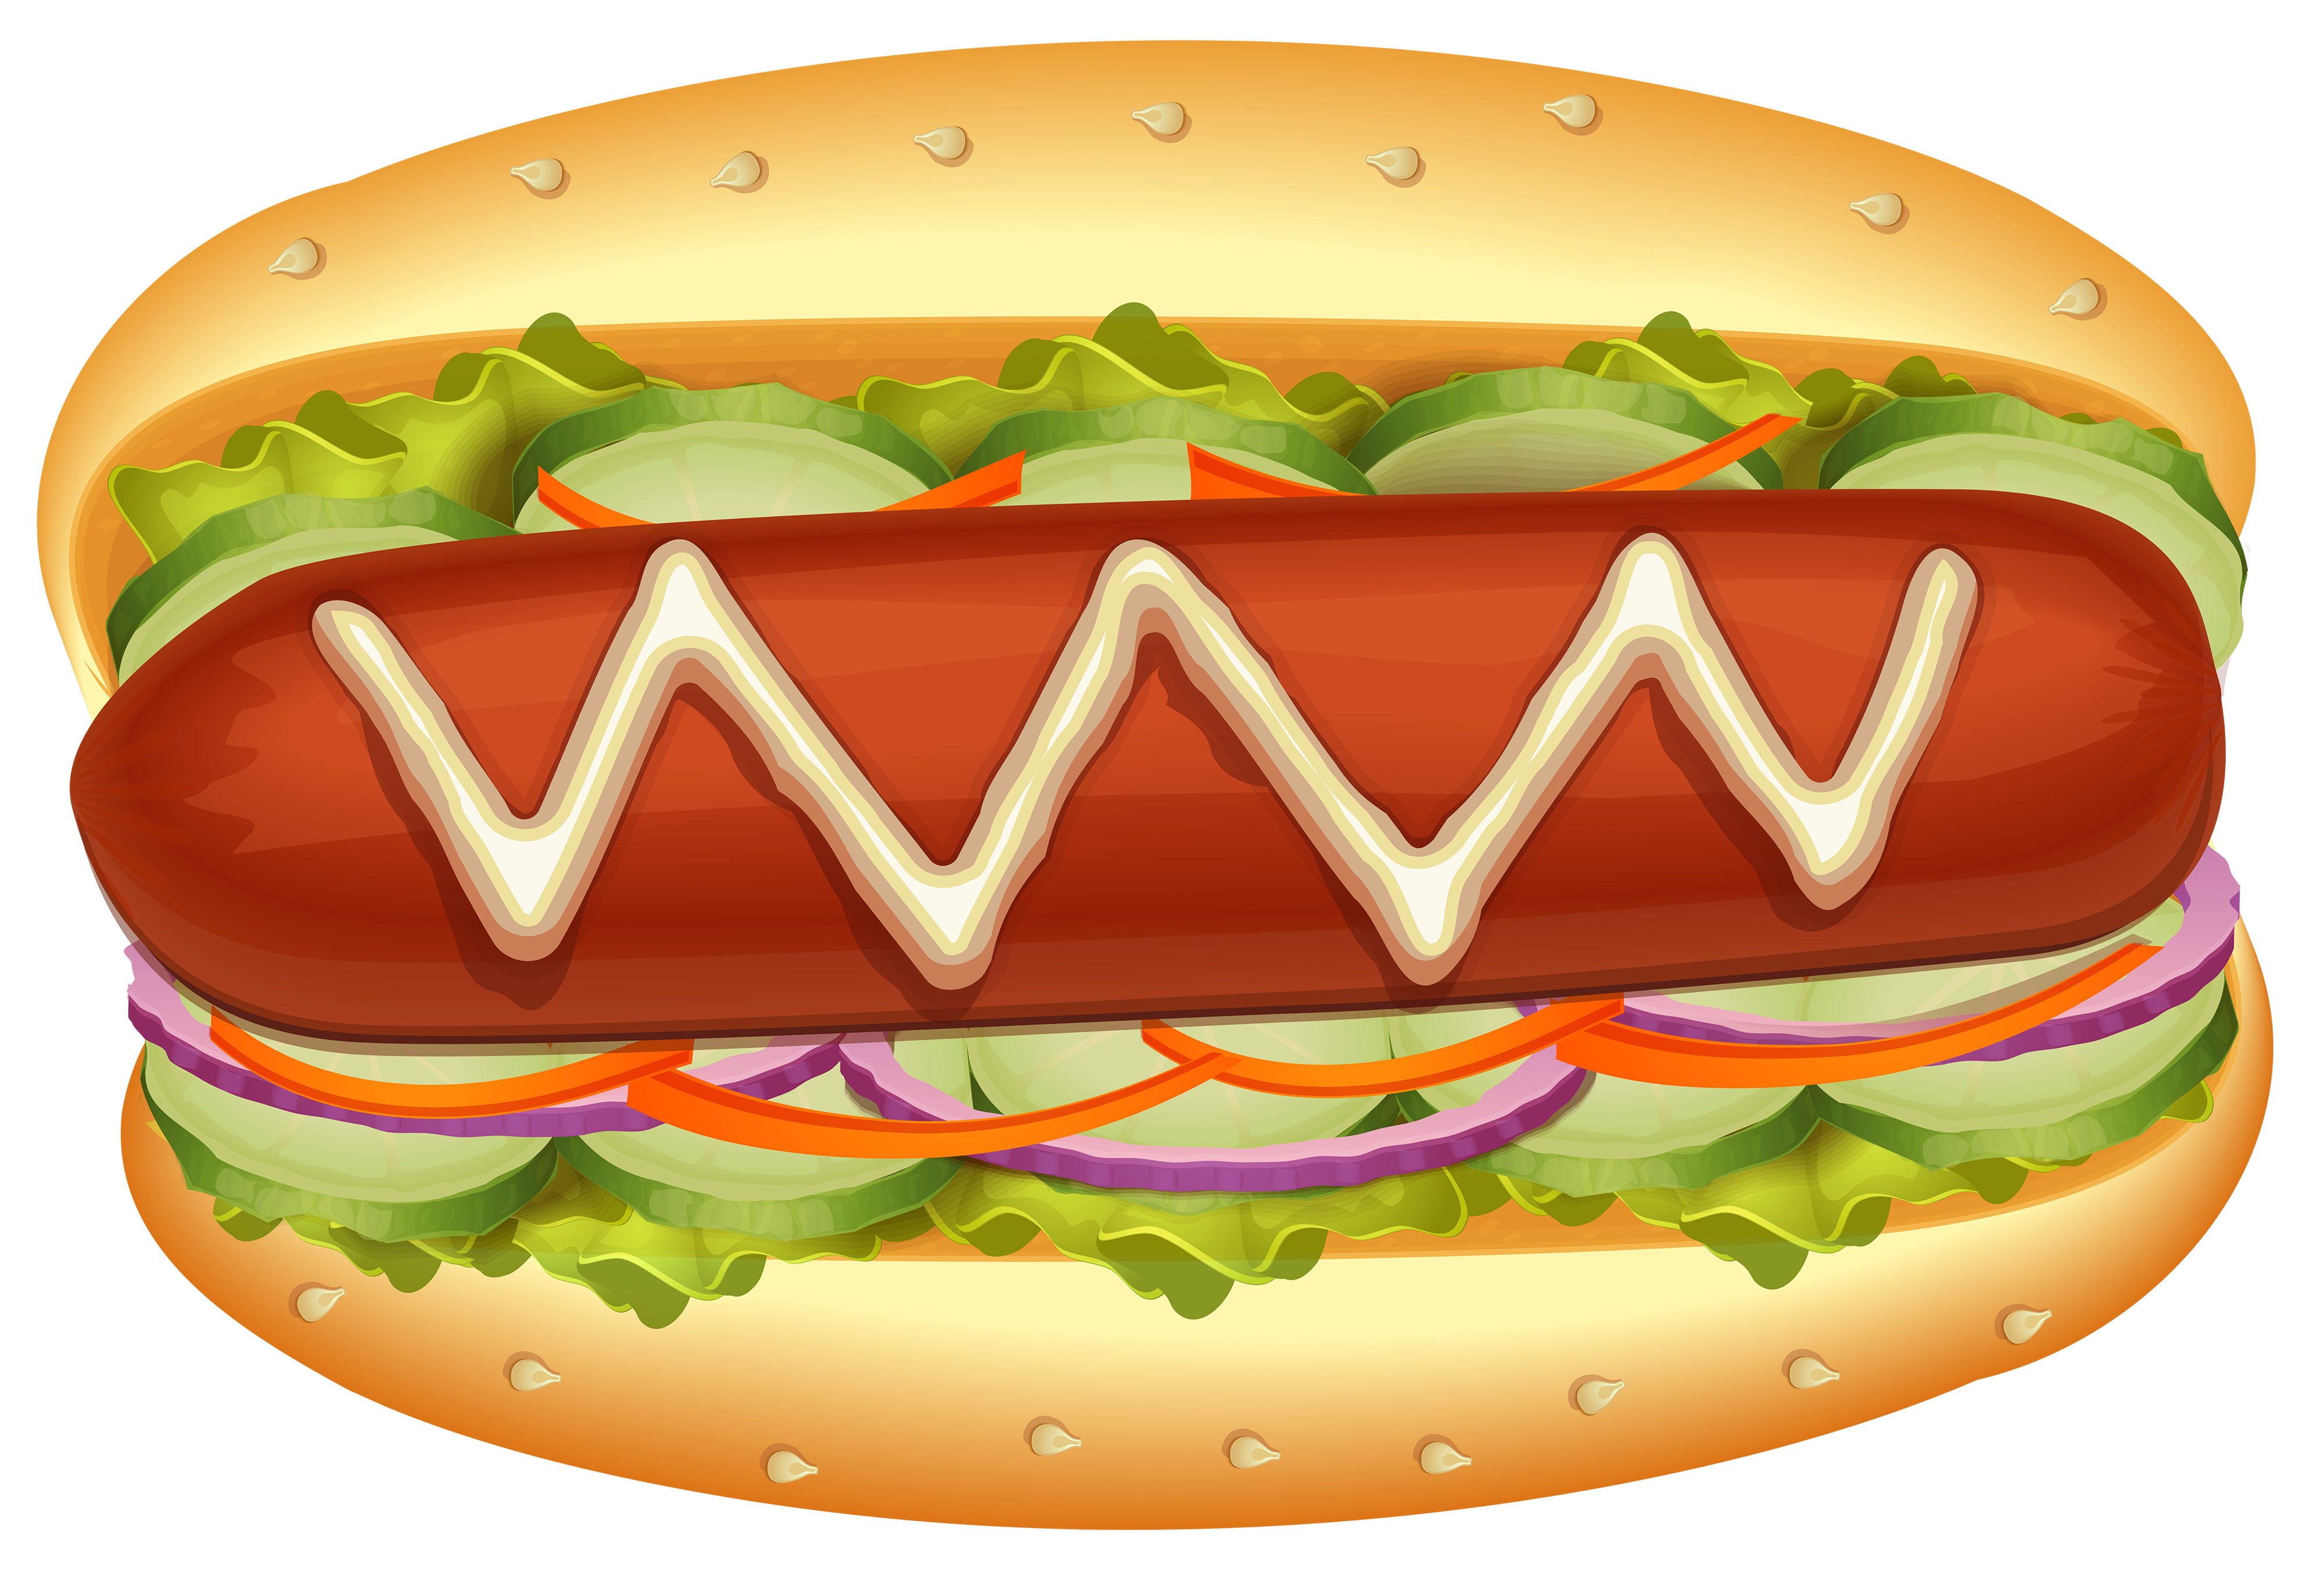 Hot dog with salad. Clipart heart food